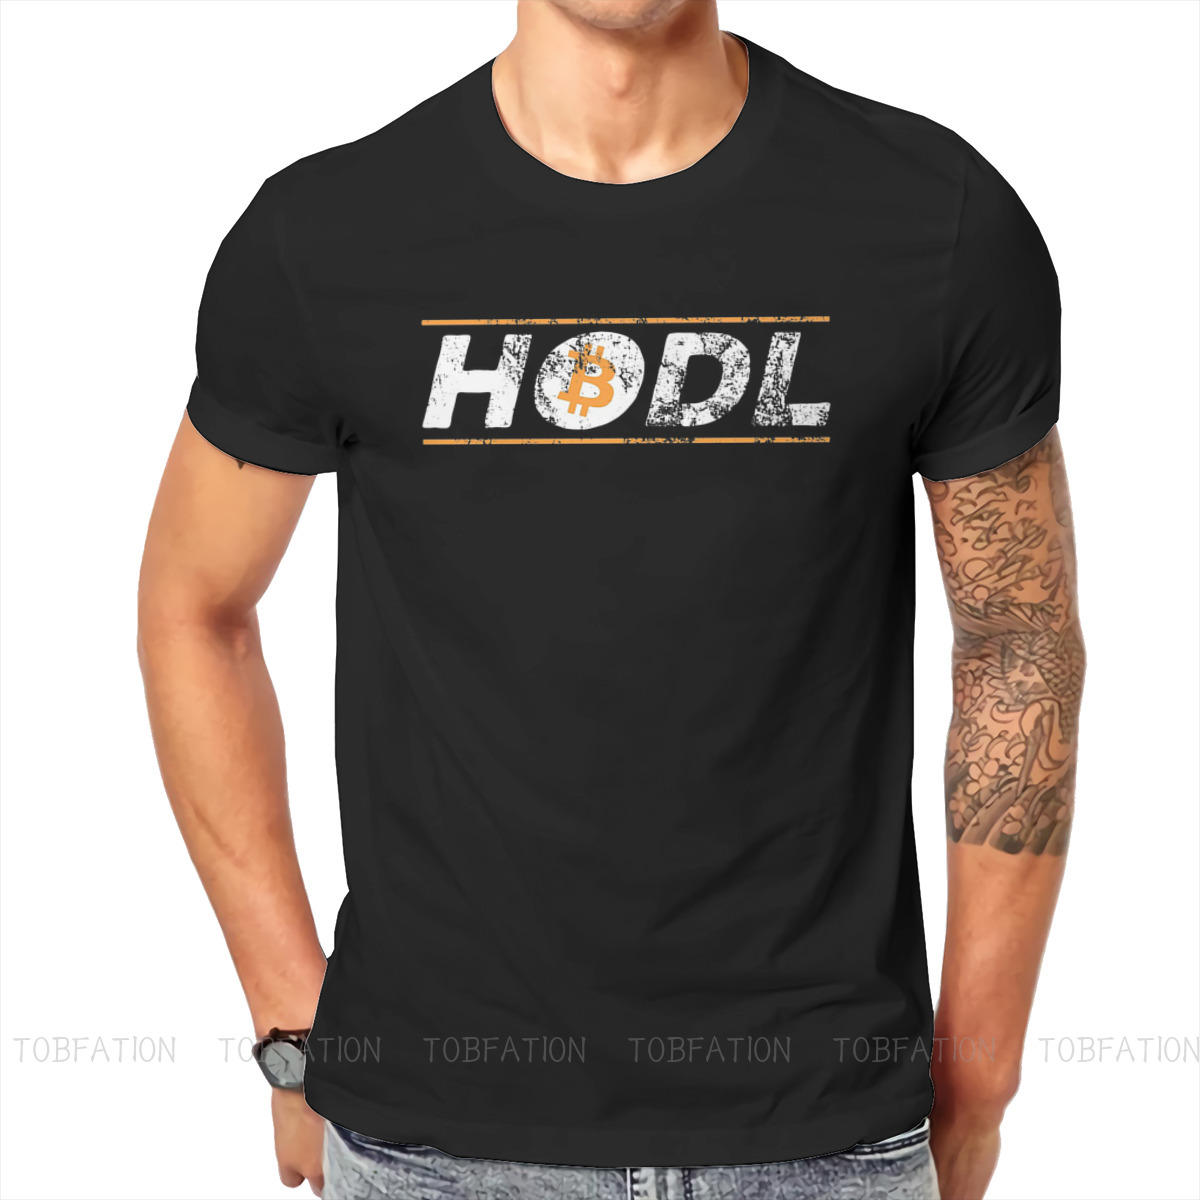 Vintage HODL  Hold BTC Essential Bitcoin Cryptocurrency Art Tshirt Black Punk T shirt Tops Homme Pure Cotton Short Sleeve Tops 1